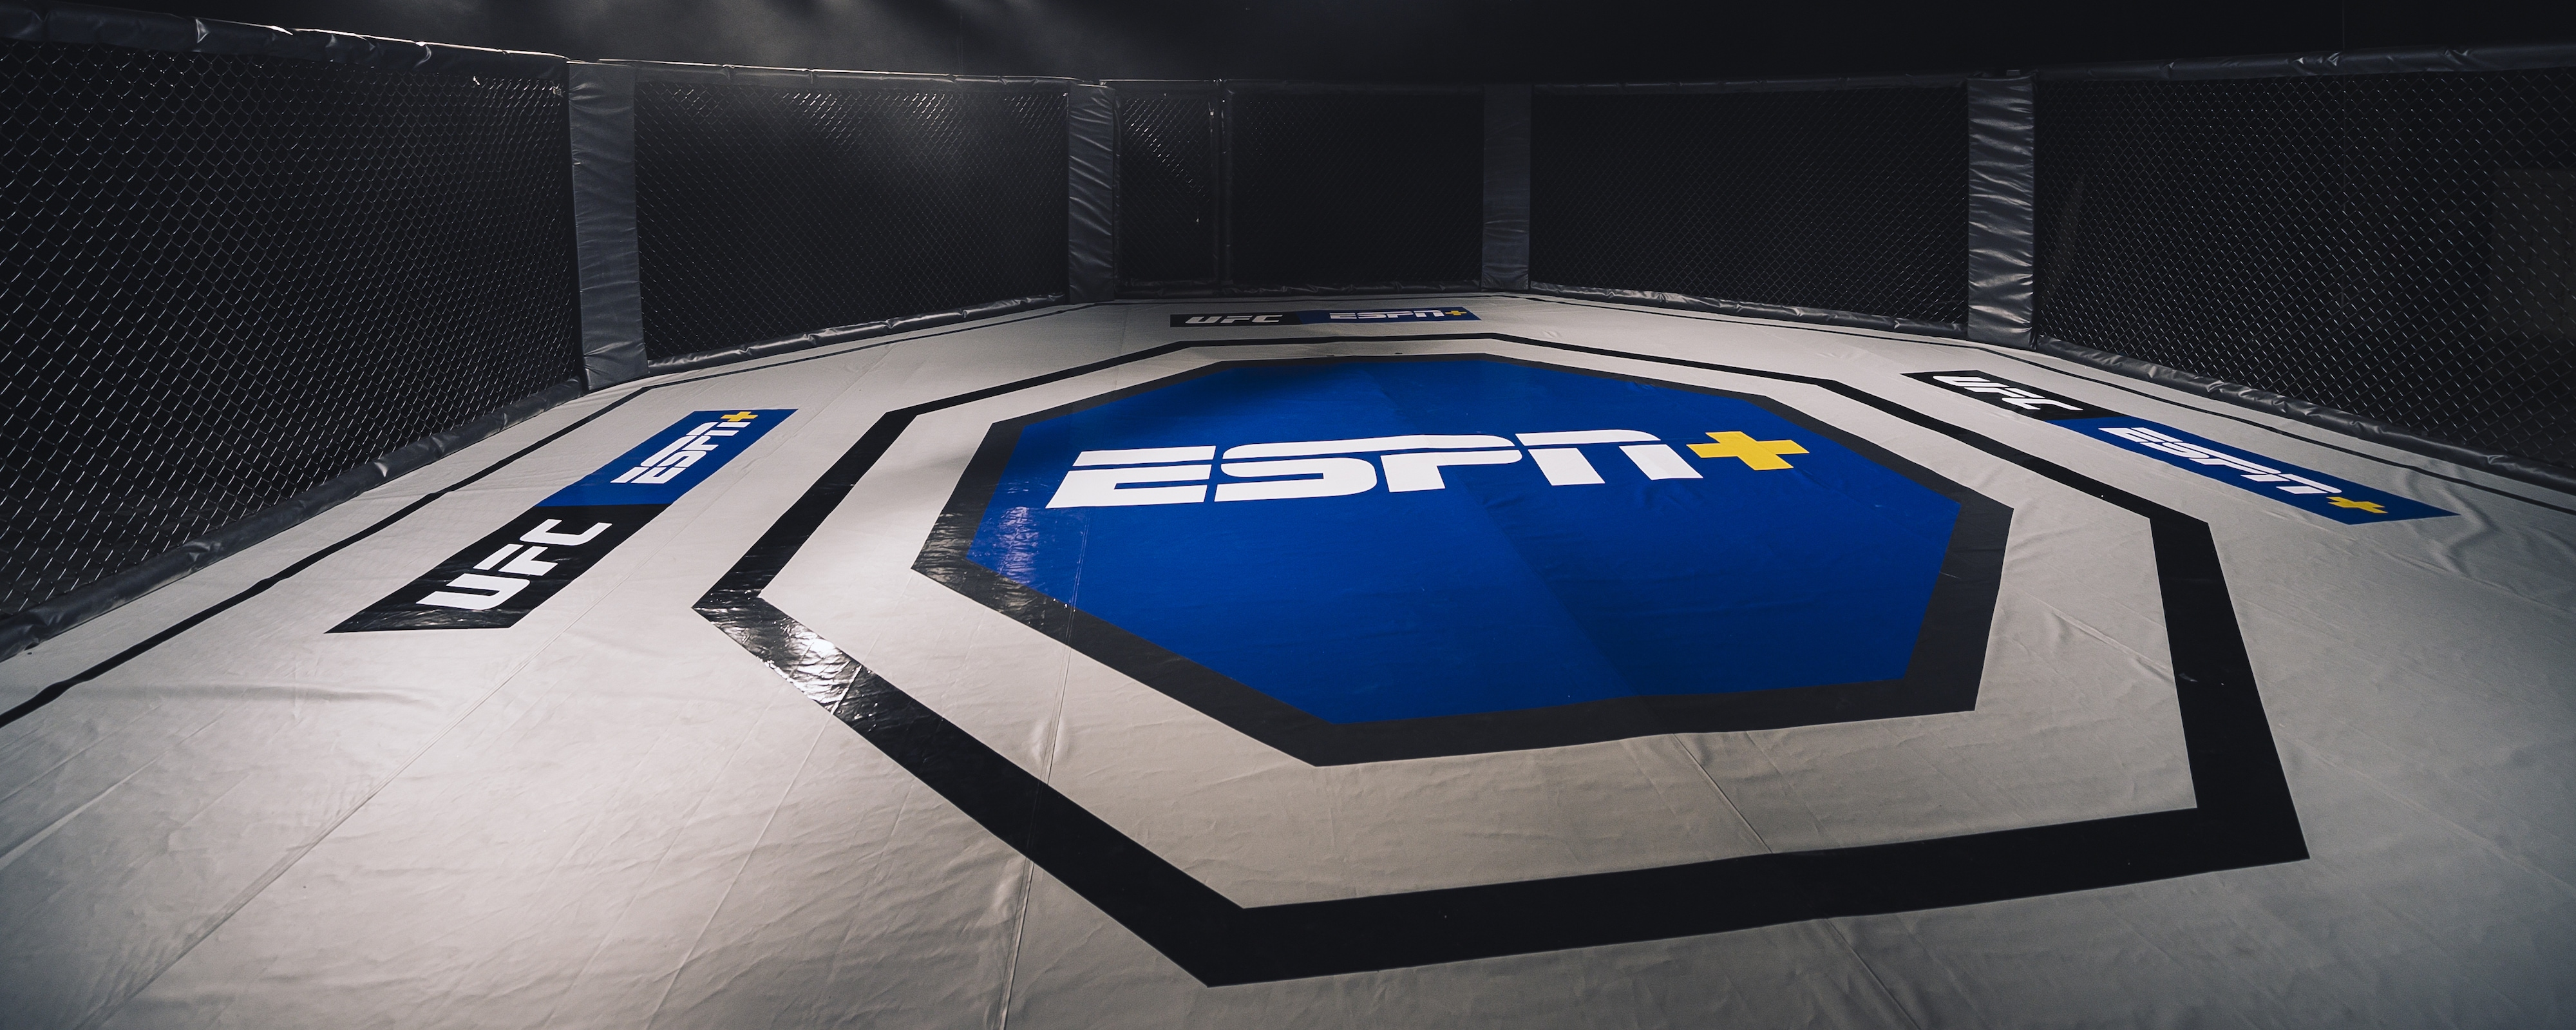 How ESPN+ Achieved 568K New Signups in Two Days